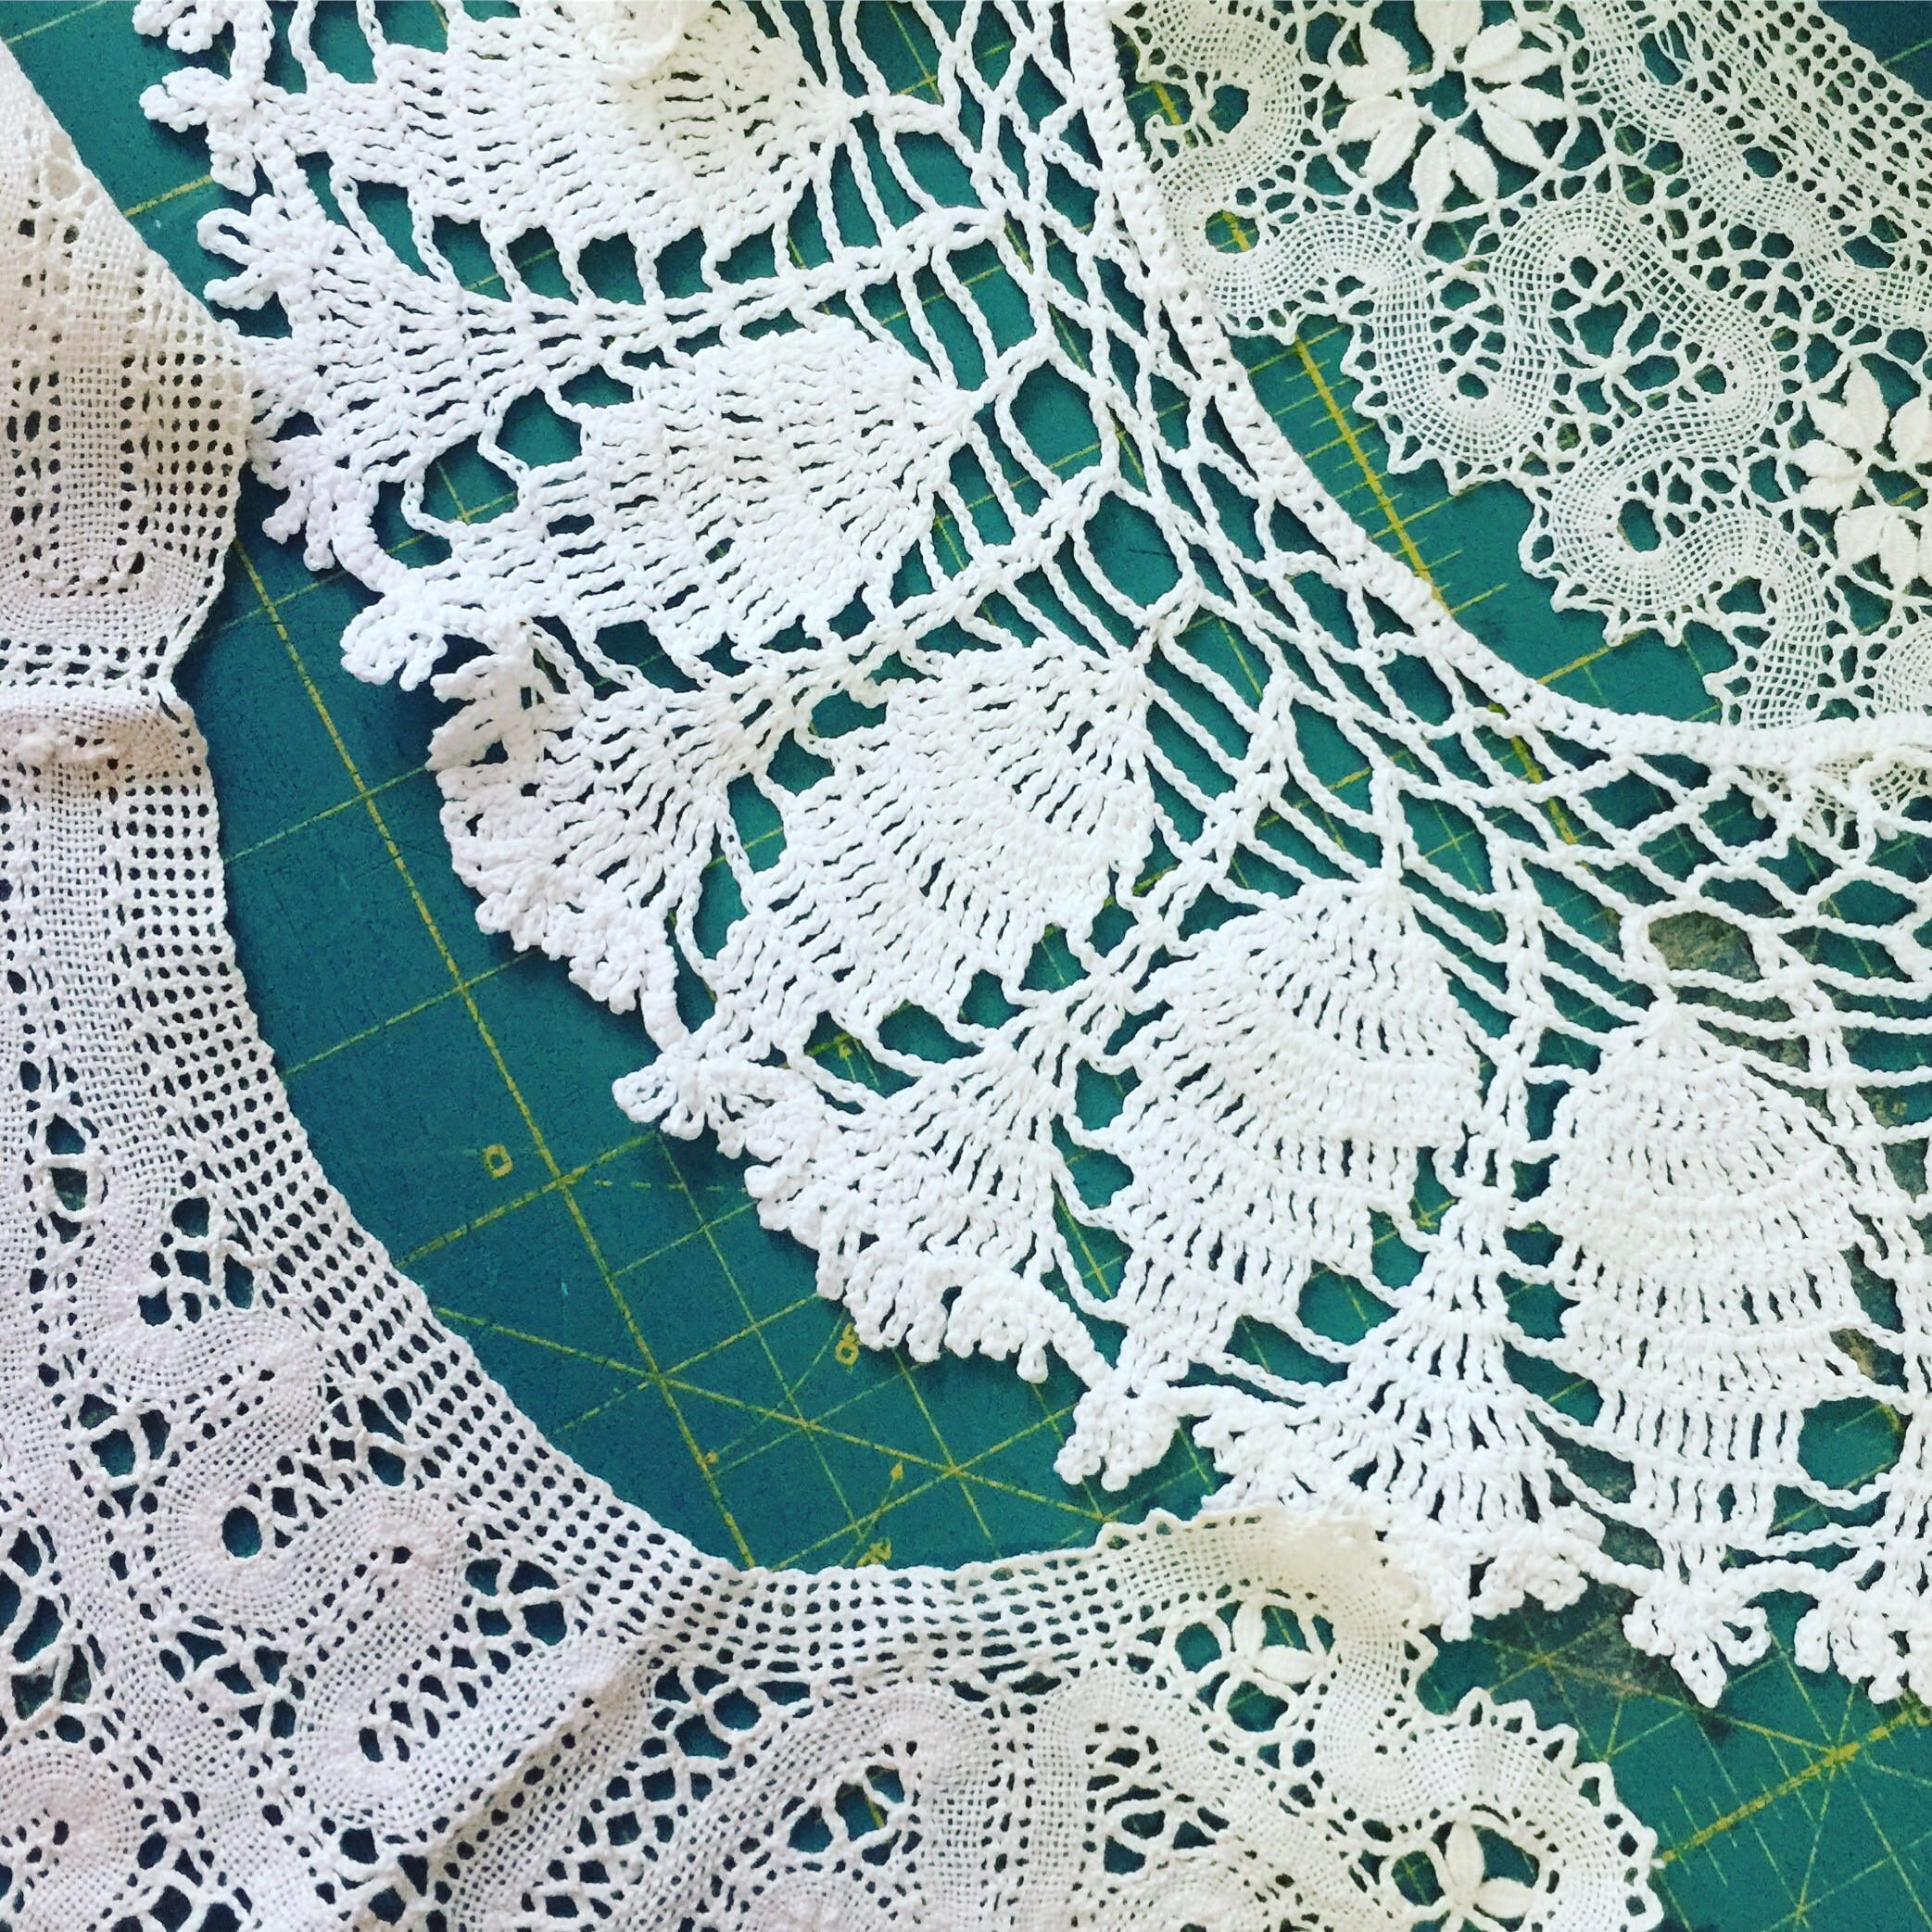 These are all hand crocheted and I think bobbin-laced collars. Either way they are very intricate and detailed. Perhaps they might look nice on a skirt hem?